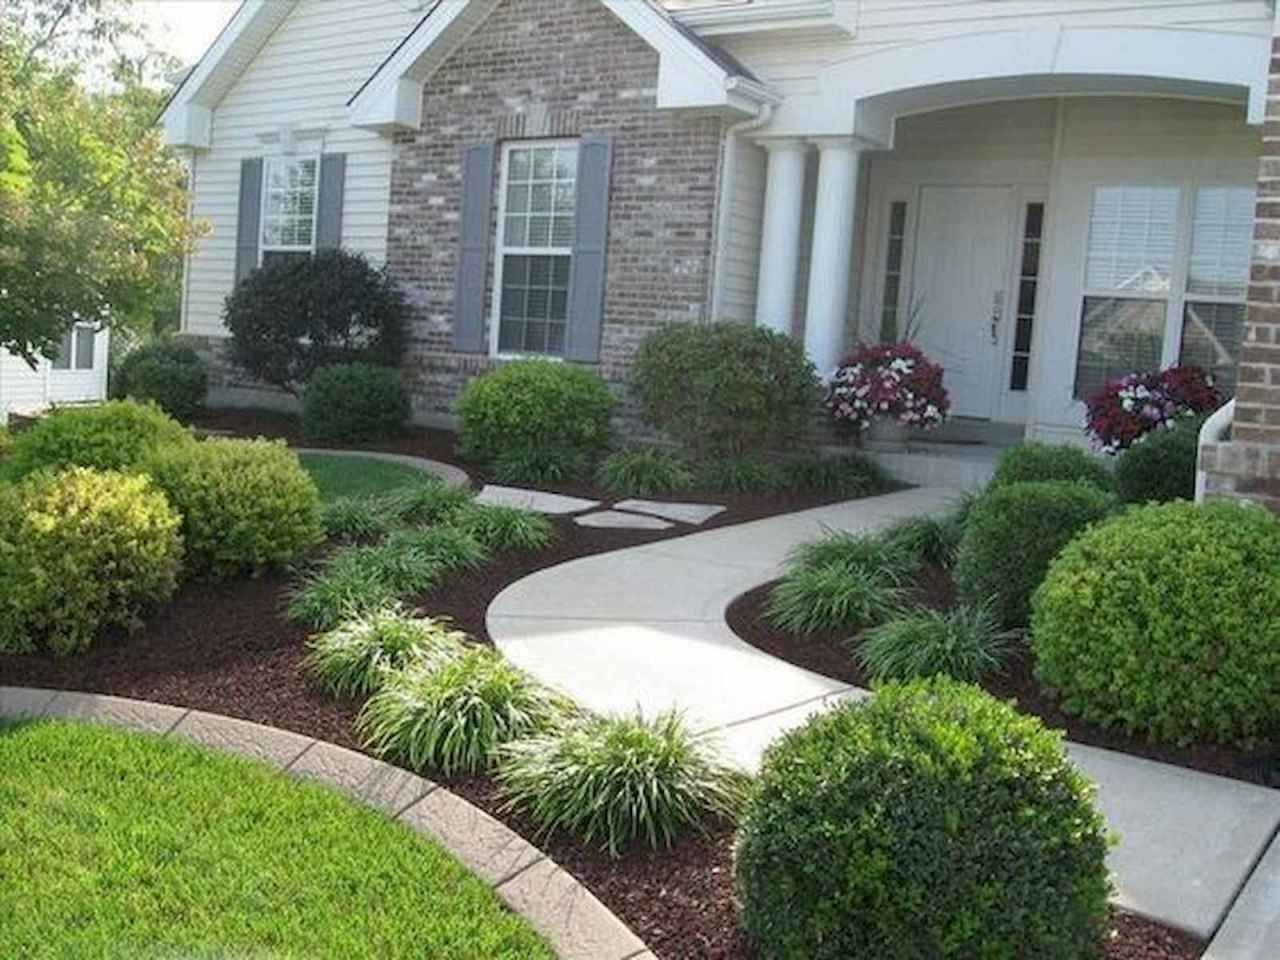 Sublime 25 Simple Front Yard Landscaping Ideas That You Need To See Https Freshouz Co Front Yard Landscaping Design Front Yard Landscaping Front Yard Garden